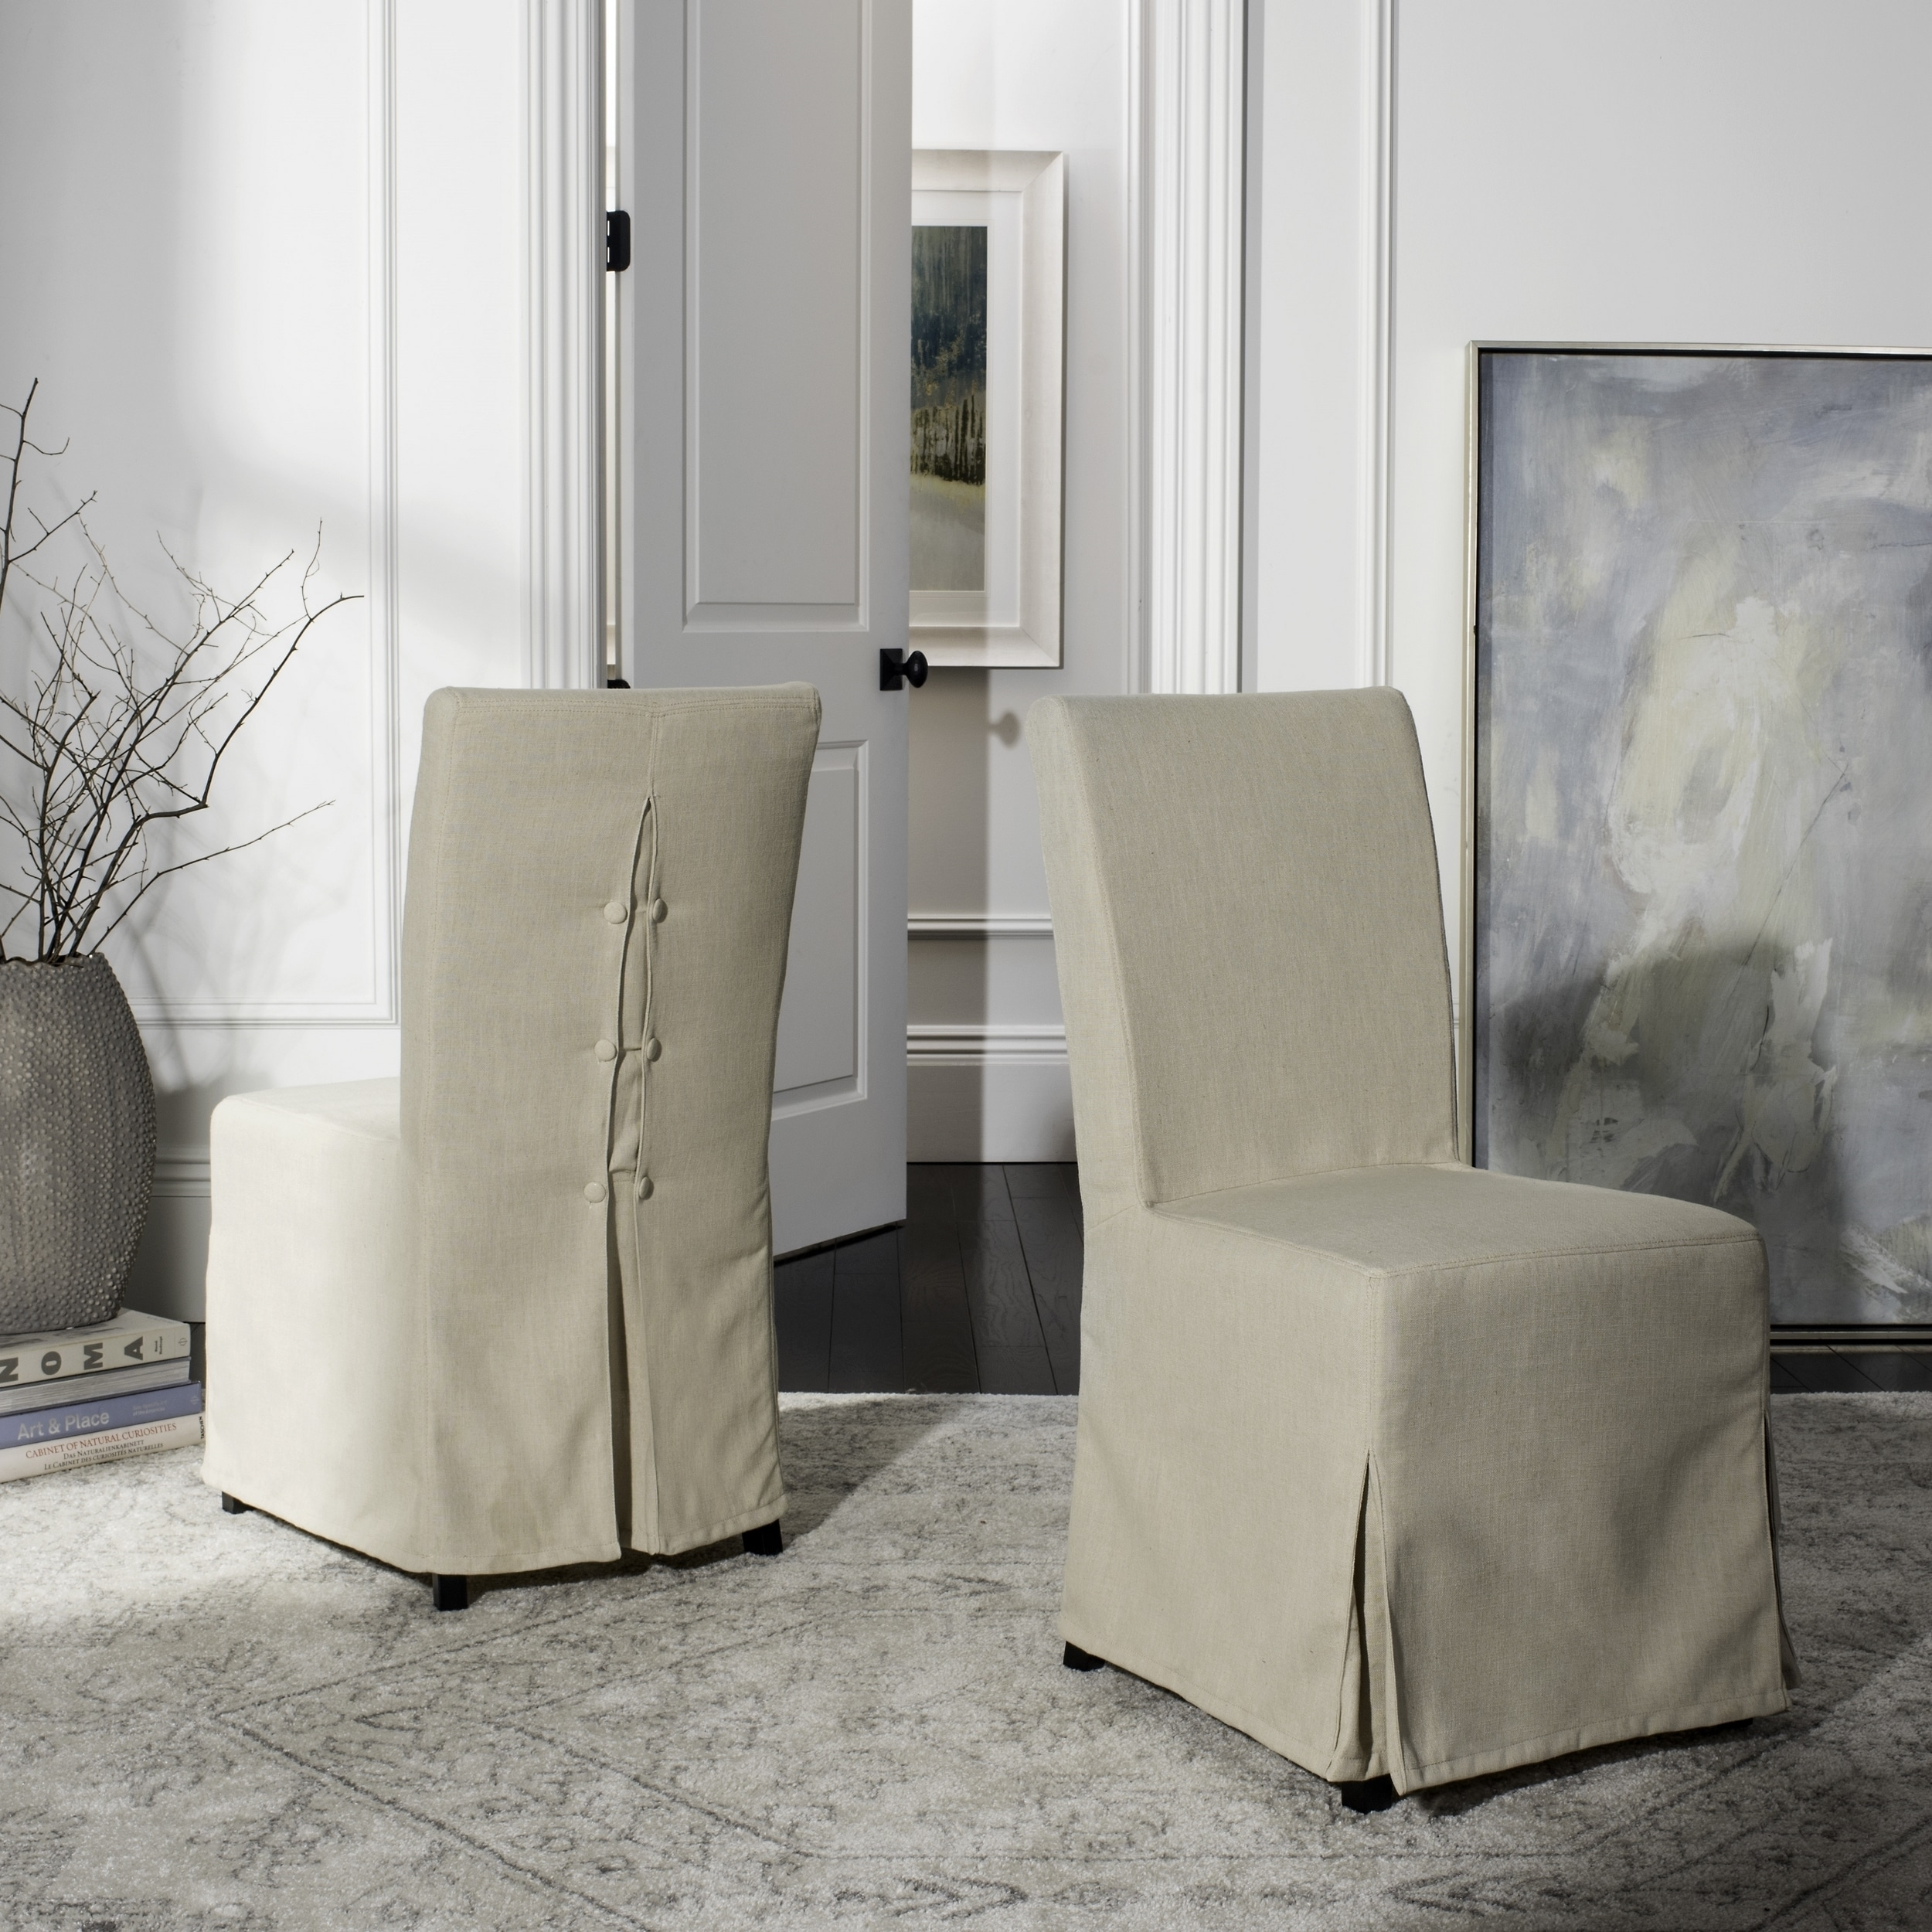 Slipcover Parson Chair - Taketheduck.com